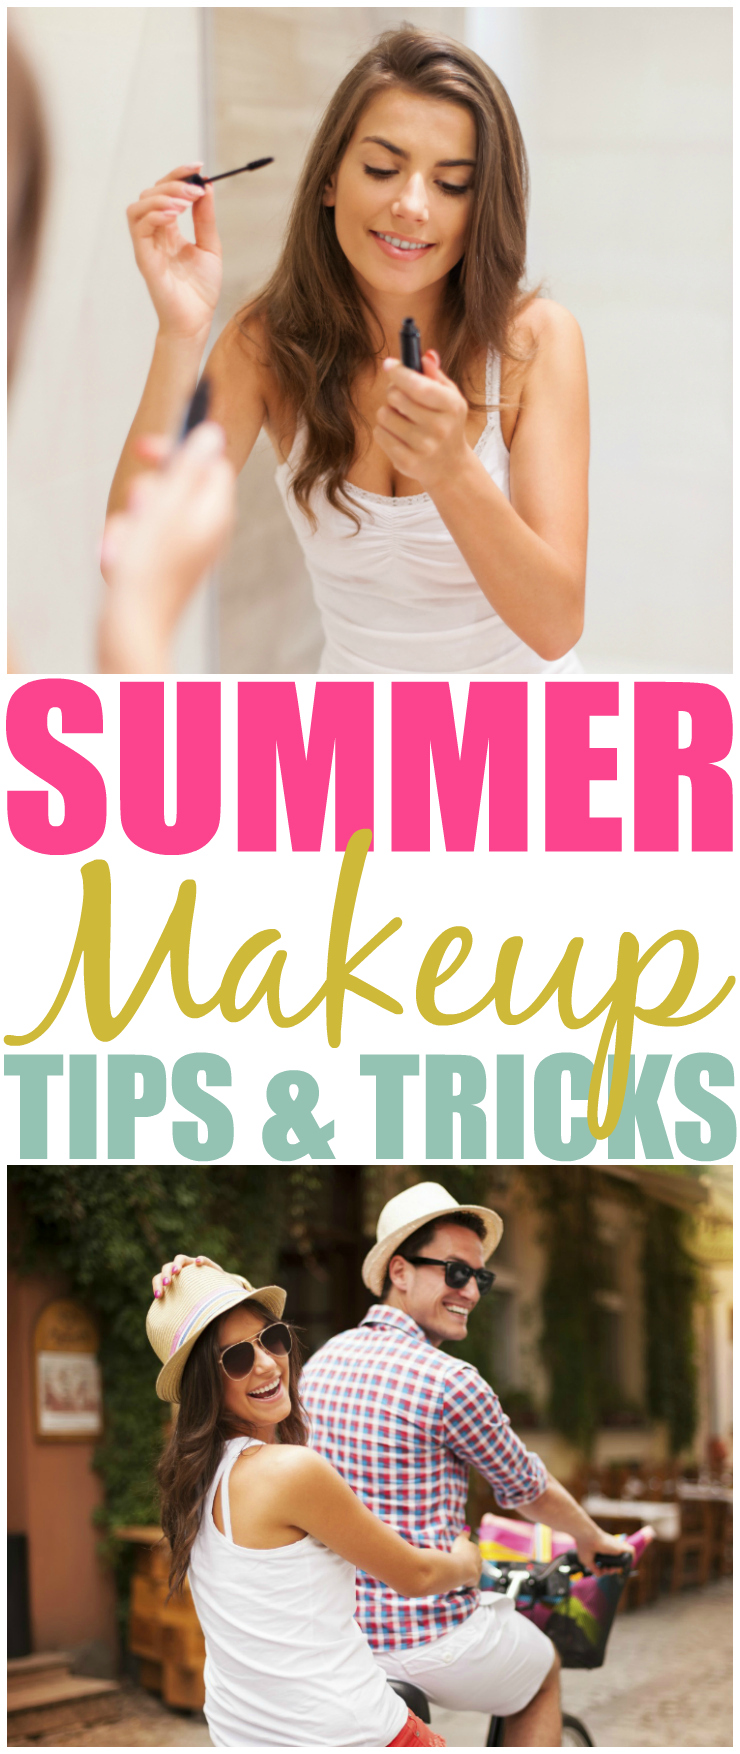 Beat the makeup melting heat with these 9 summer makeup tips and tricks. They will have you and your skin looking flawless all summer long.